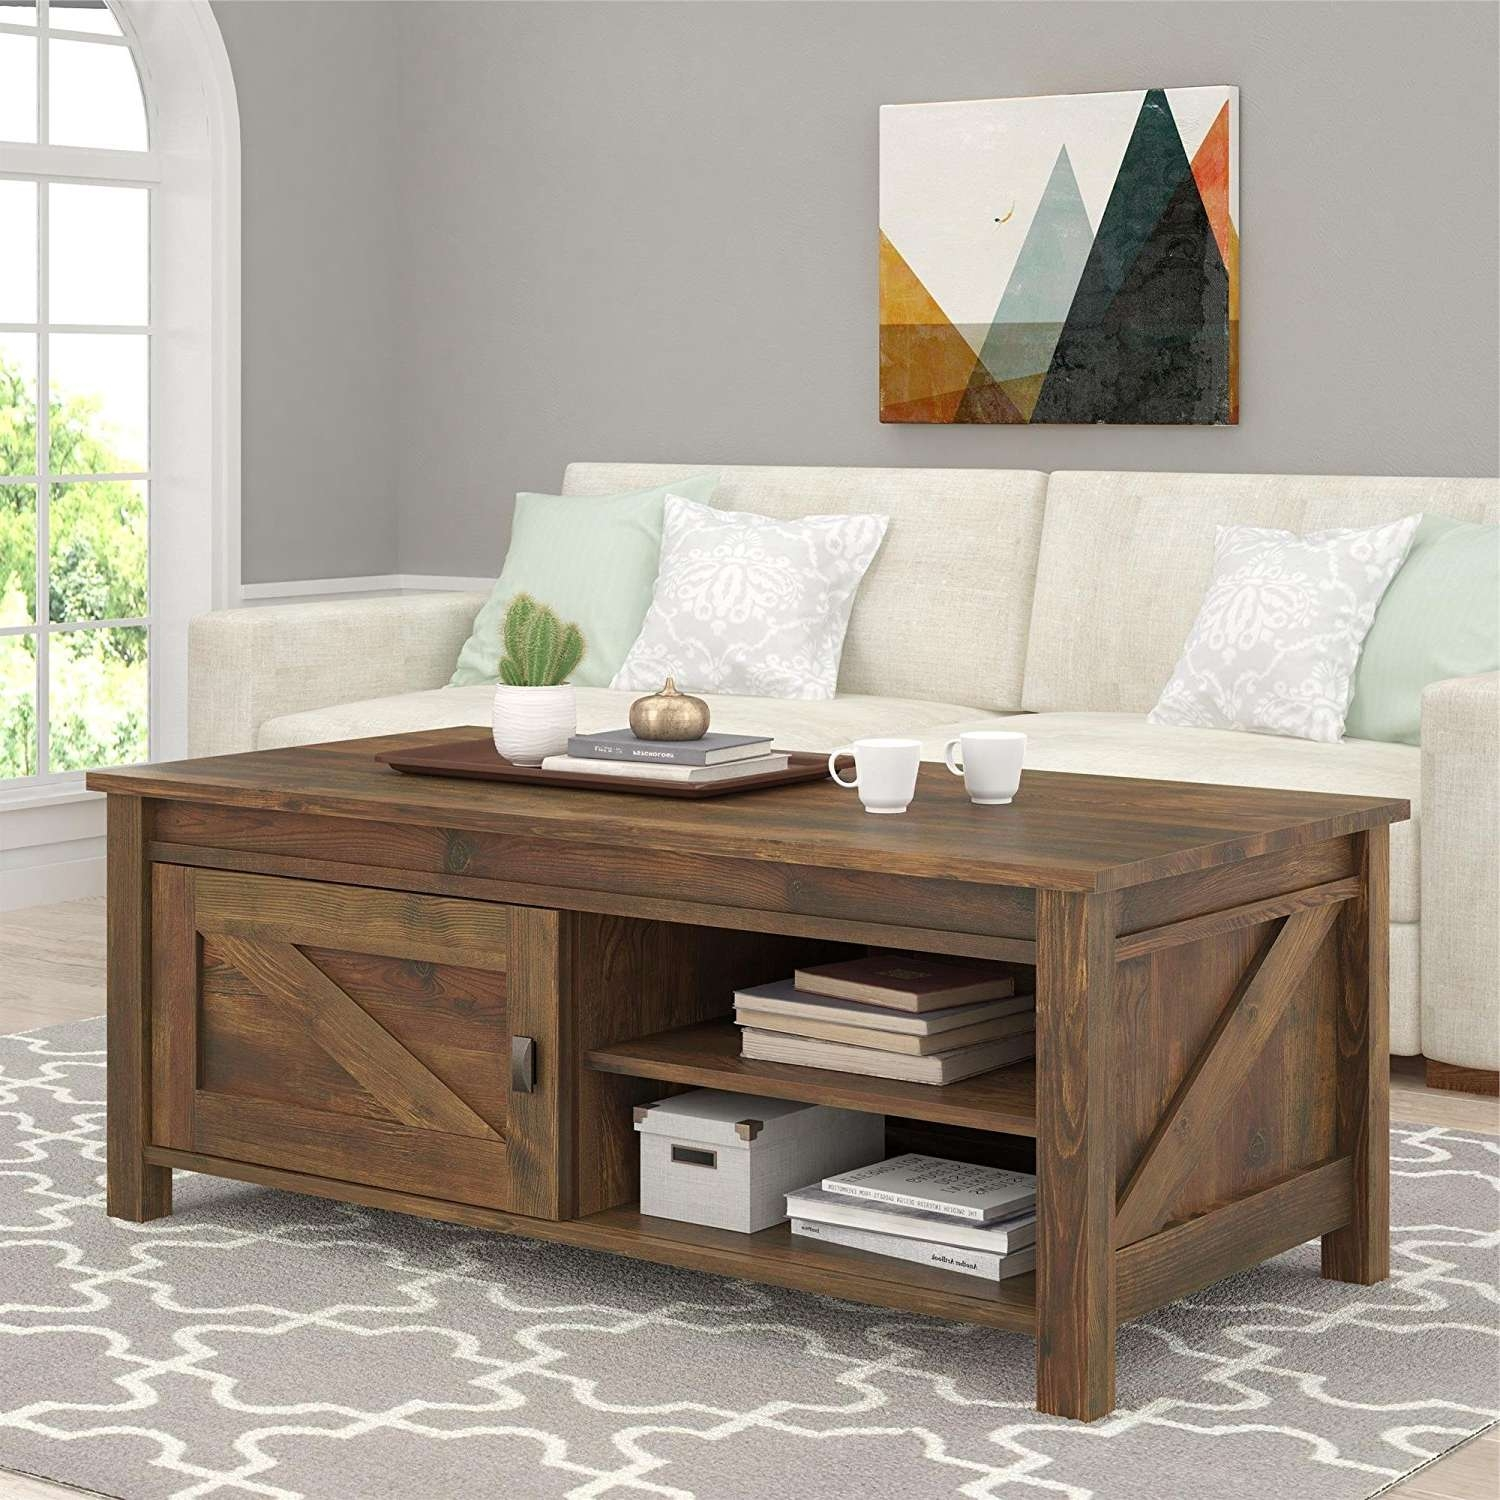 Coffee Table : Marvelous Tv Stand With Mount Unique Coffee Tables Intended For Coffee Tables And Tv Stands Matching (View 12 of 20)